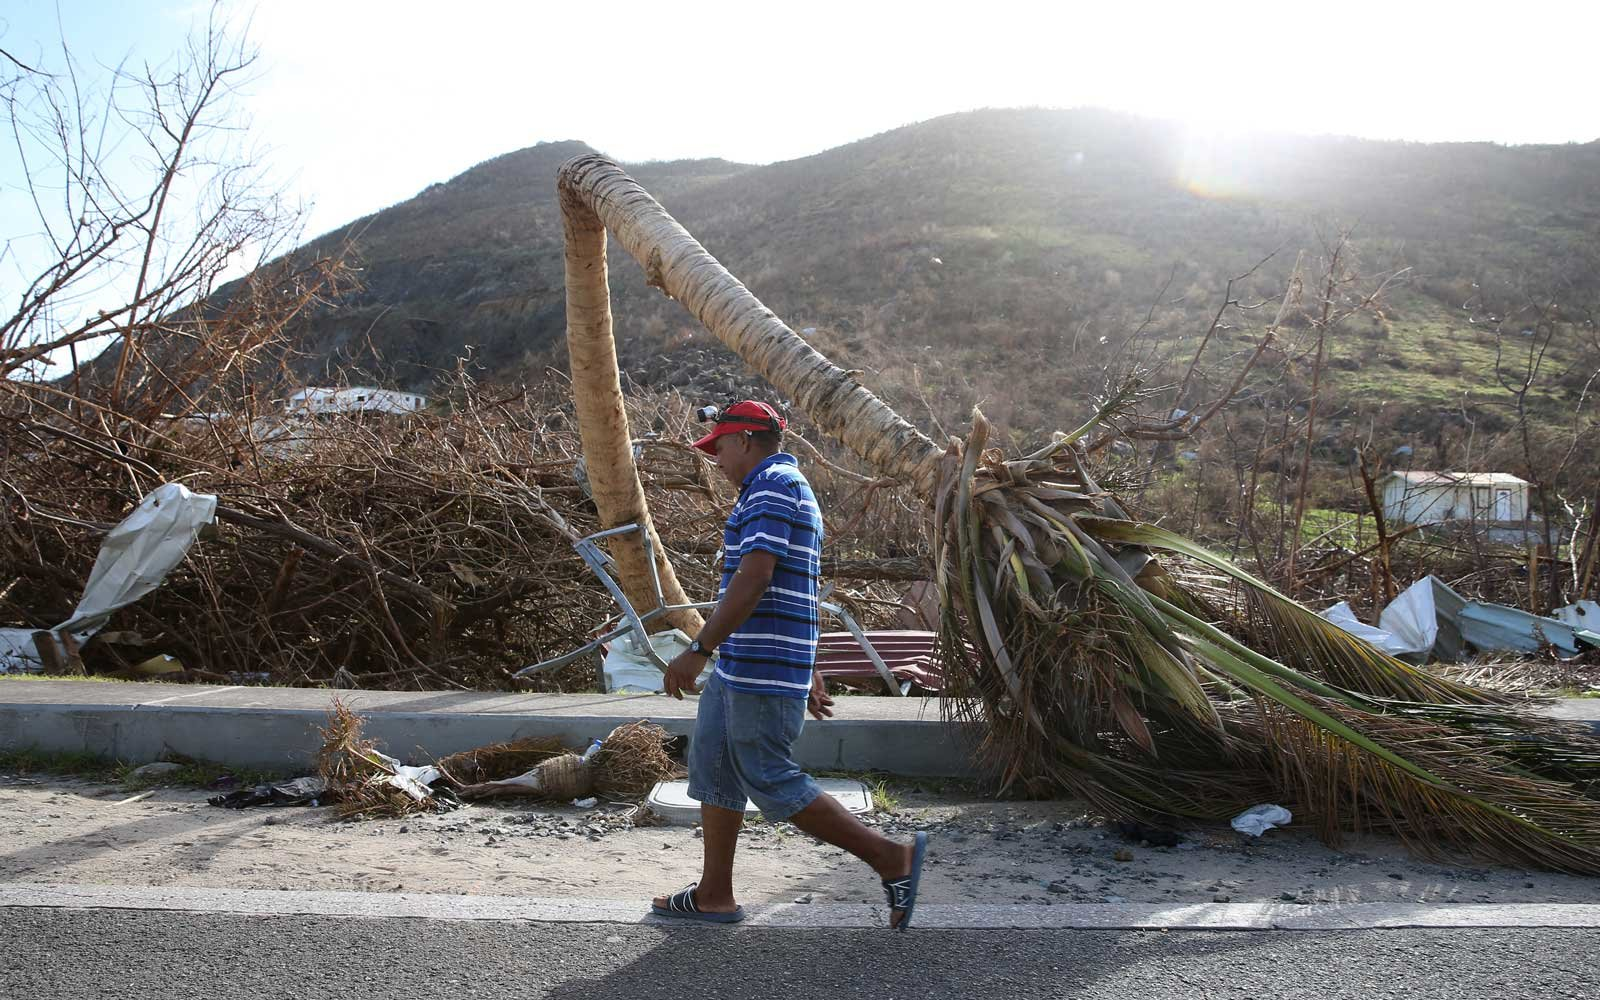 A man walks past a split palm tree on September 11, 2017 in Philipsburg, St. Maarten